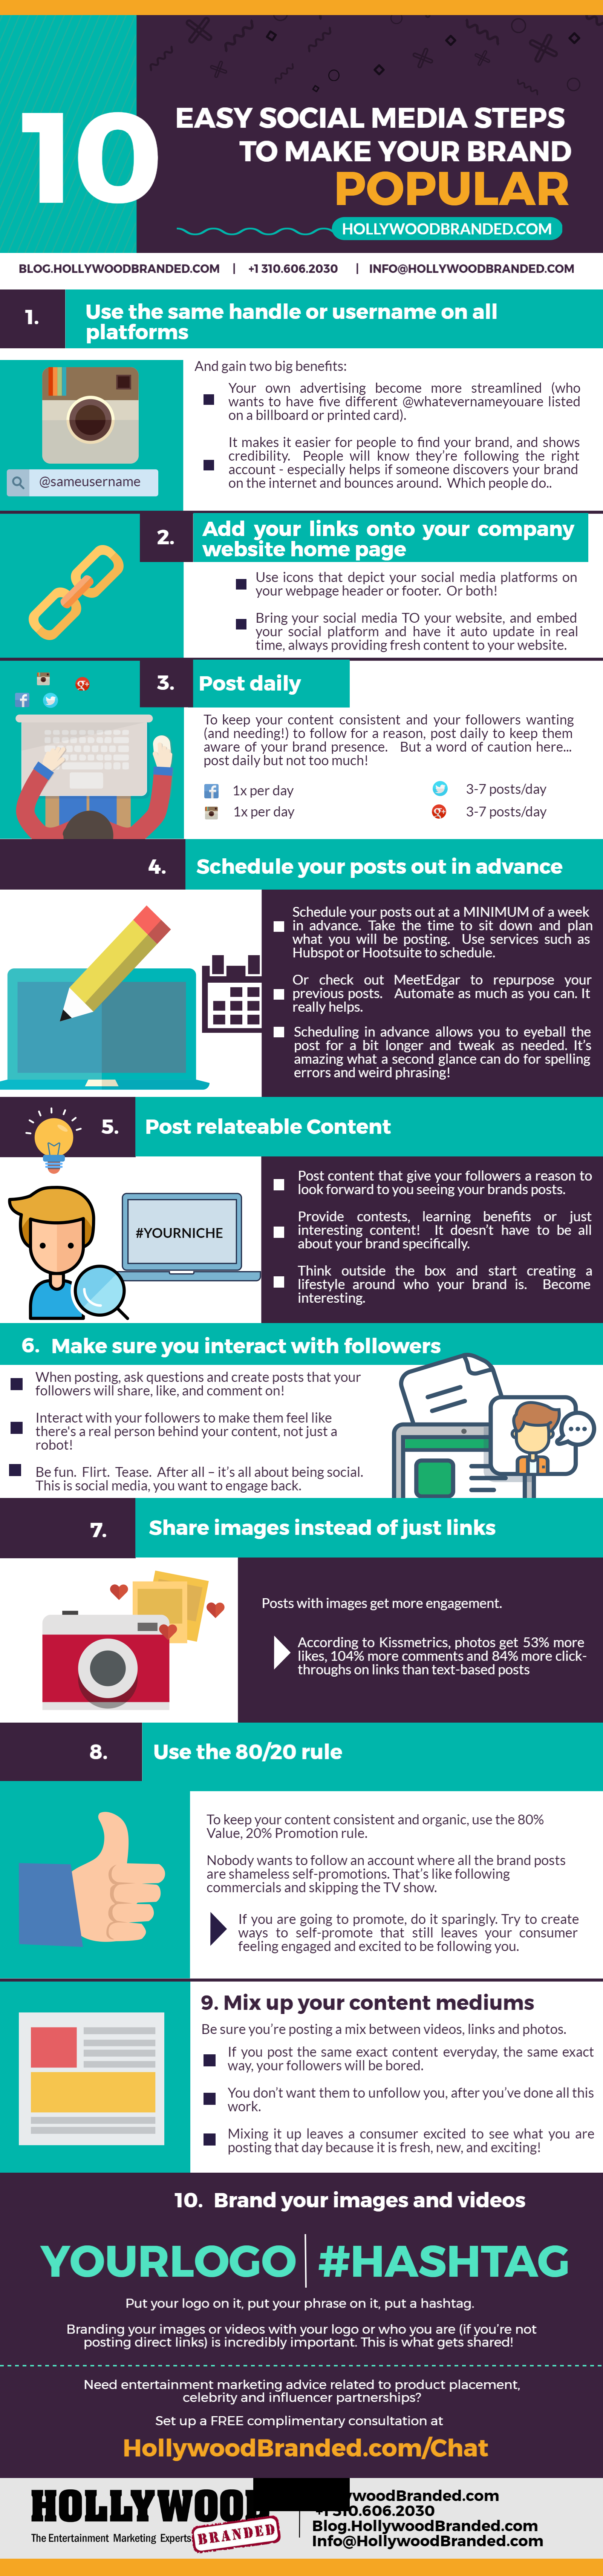 Eps 18 Easy Social Media Steps To Make Your Brand Popular Infographic.png